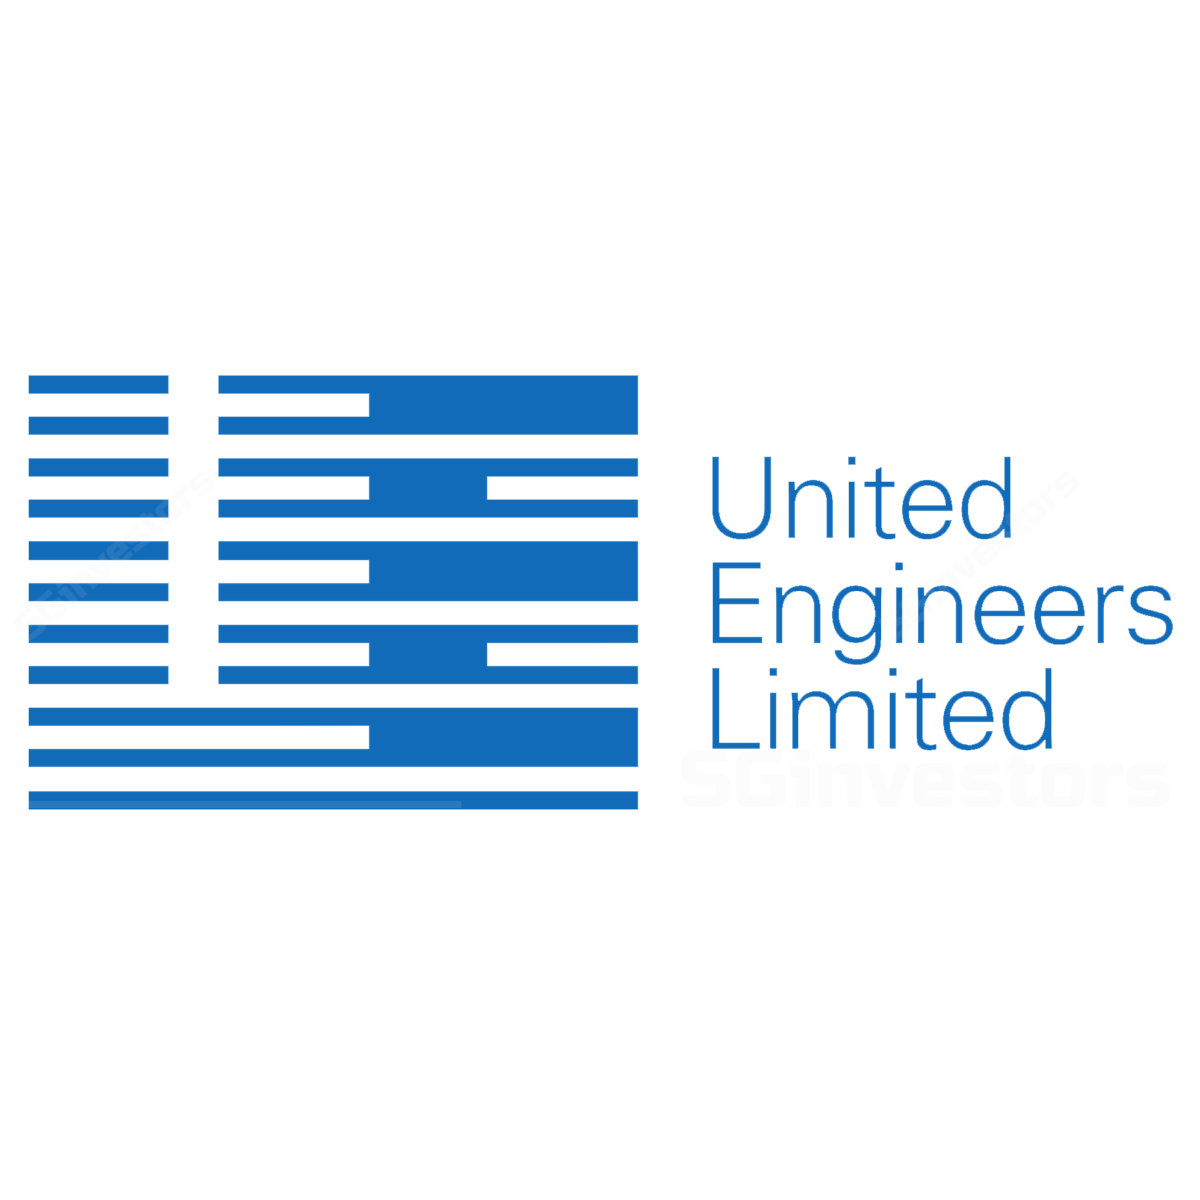 United Engineers - CGS-CIMB 2018-05-07: 1Q18 Operationally Stronger